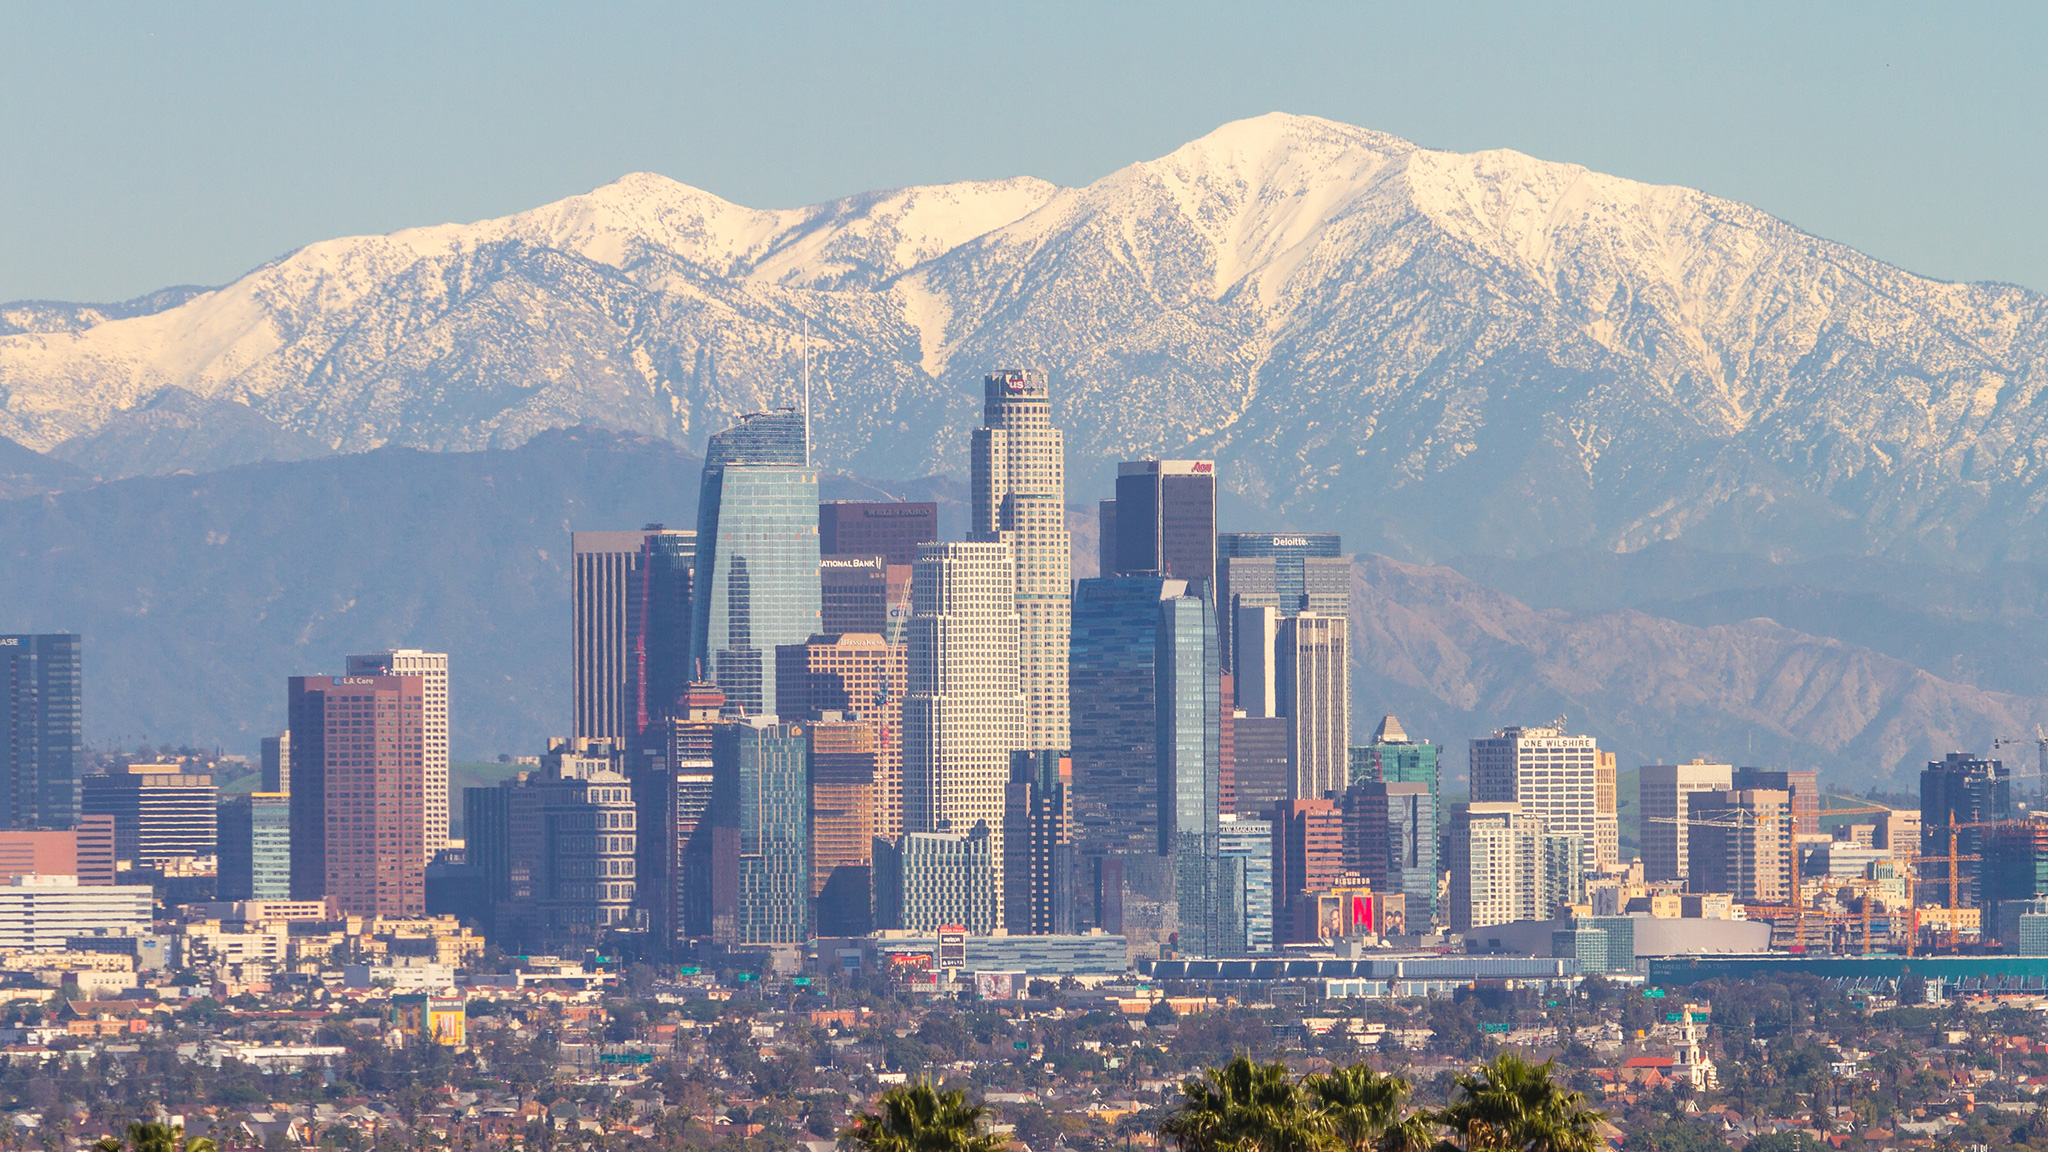 The San Gabriel mountains, seen in the distance behind downtown L.A., are topped with snow.